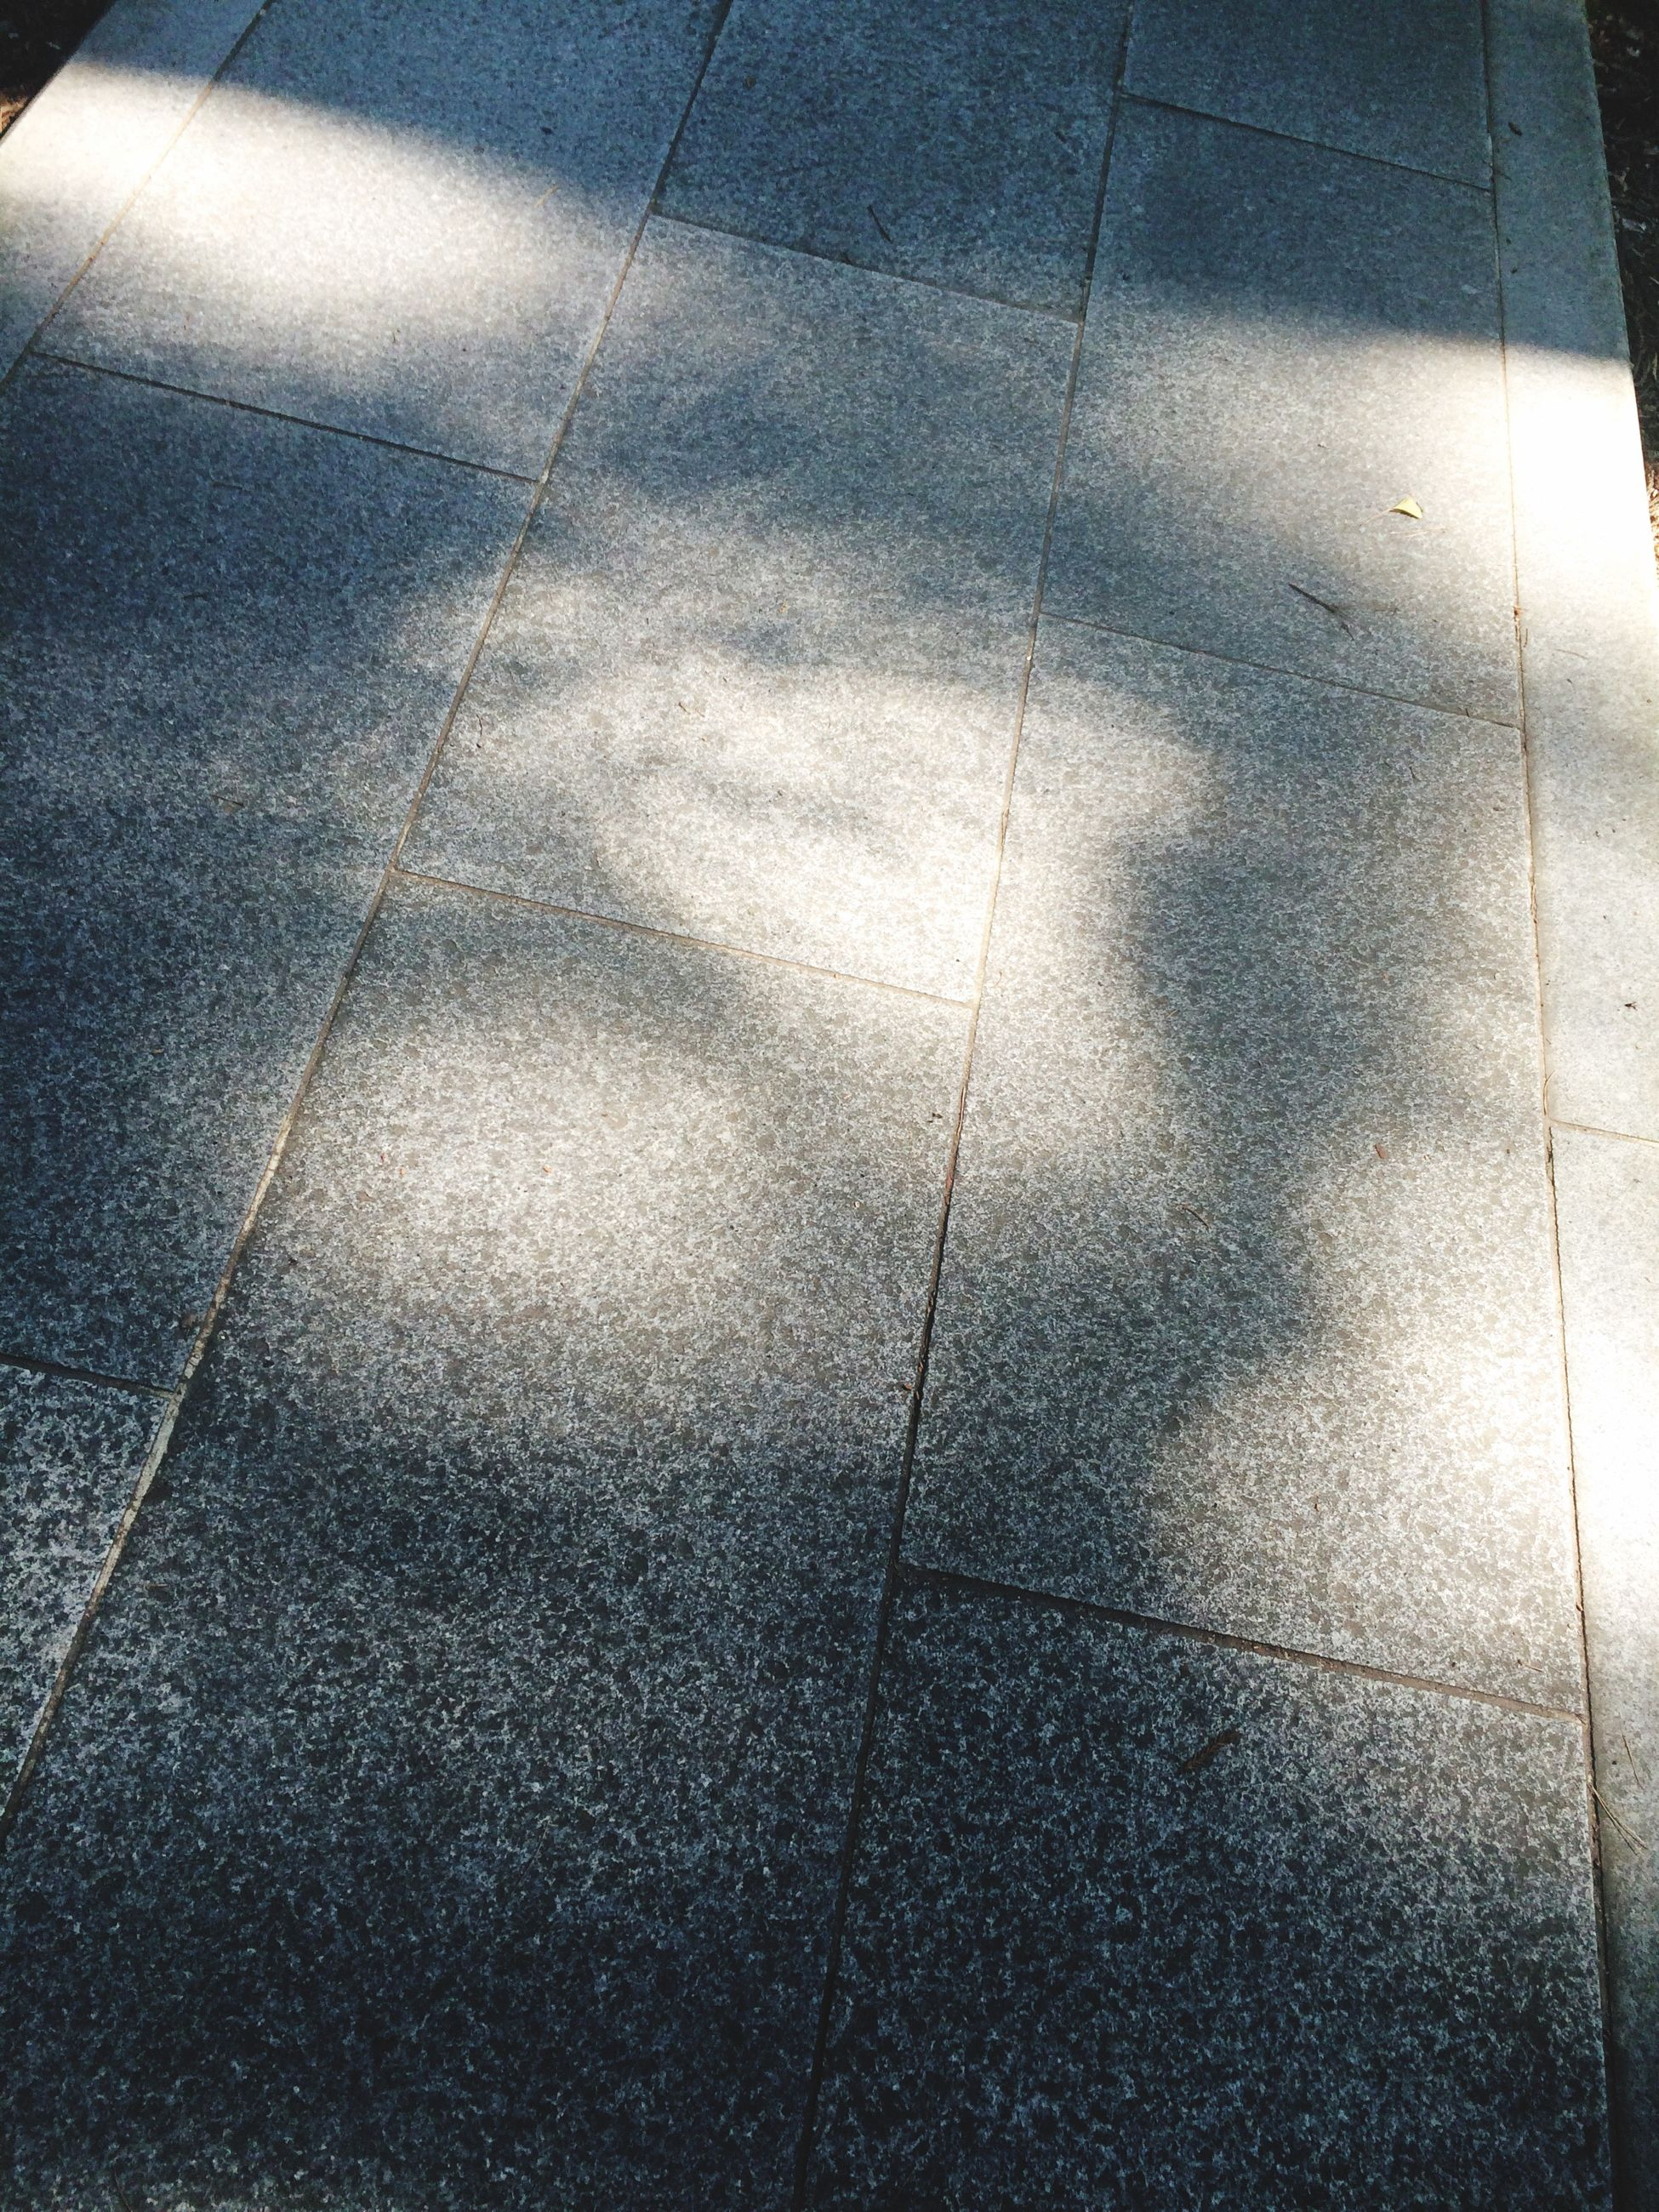 high angle view, shadow, street, sunlight, road marking, road, sidewalk, transportation, tiled floor, asphalt, paving stone, flooring, the way forward, day, footpath, outdoors, cobblestone, pavement, low section, pattern